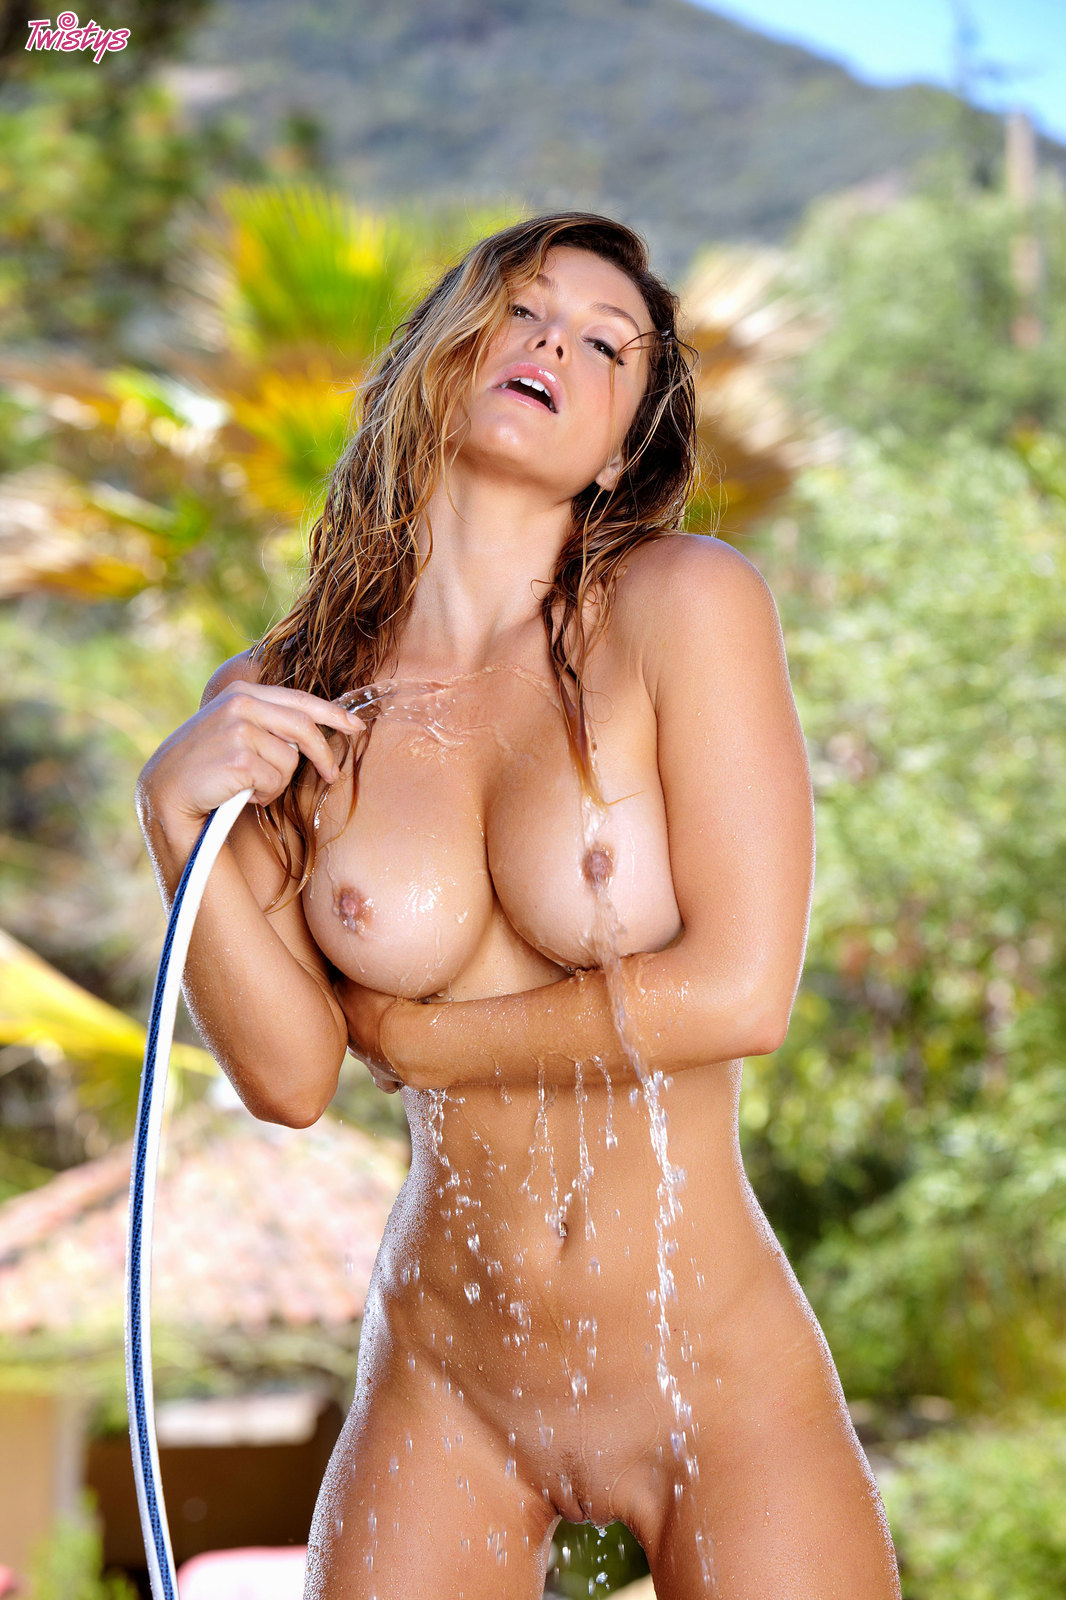 Heather Vandeven Cooling Down